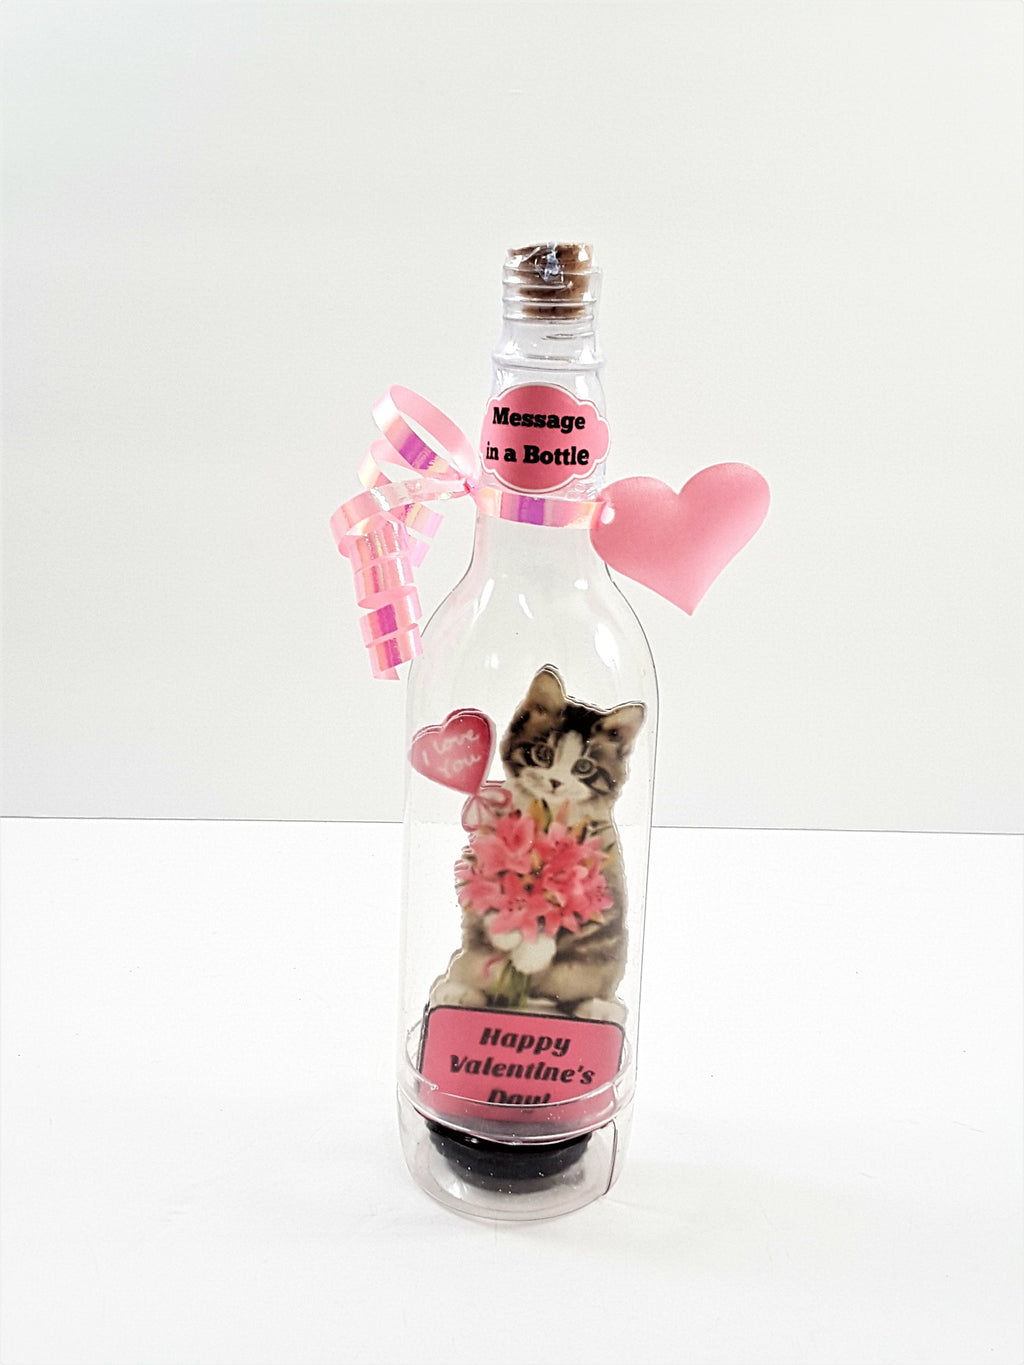 VALENTINE'S DAY 3D GREETING CARD - MESSAGE IN A BOTTLE - PRETTY I LOVE YOU KITTY